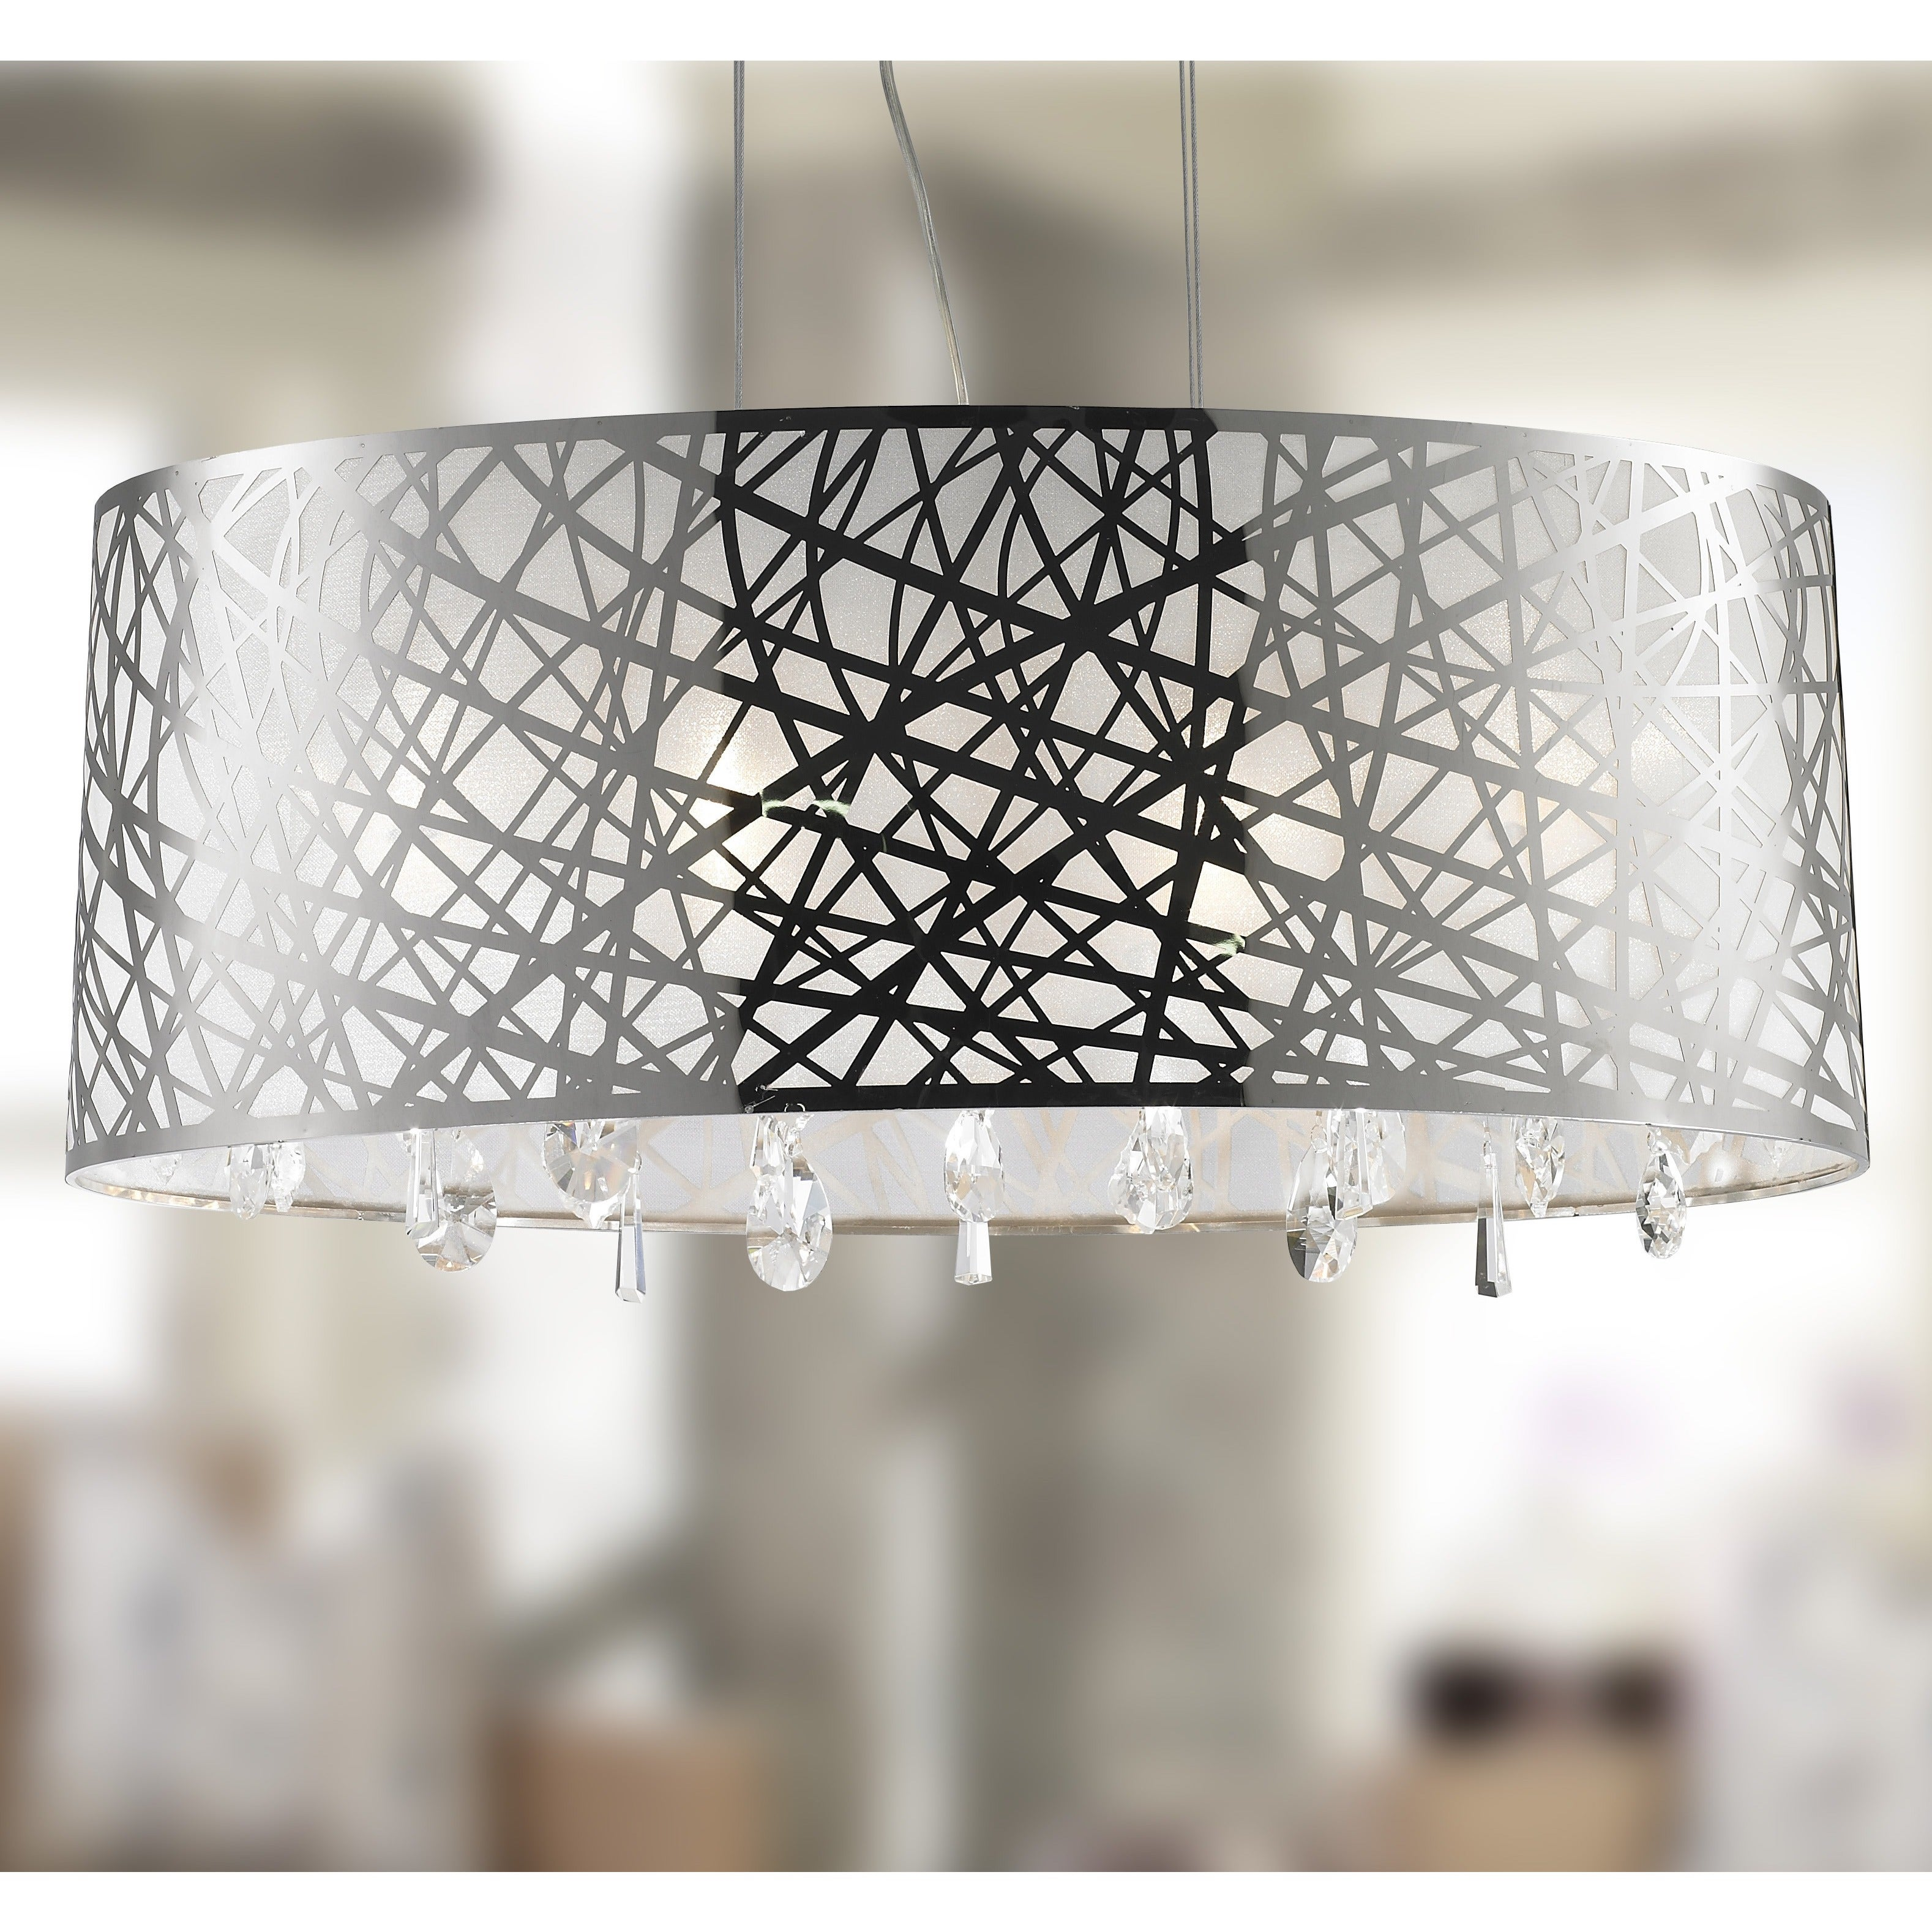 Brilliance Lighting and Chandeliers High Gloss Modern 6 L...